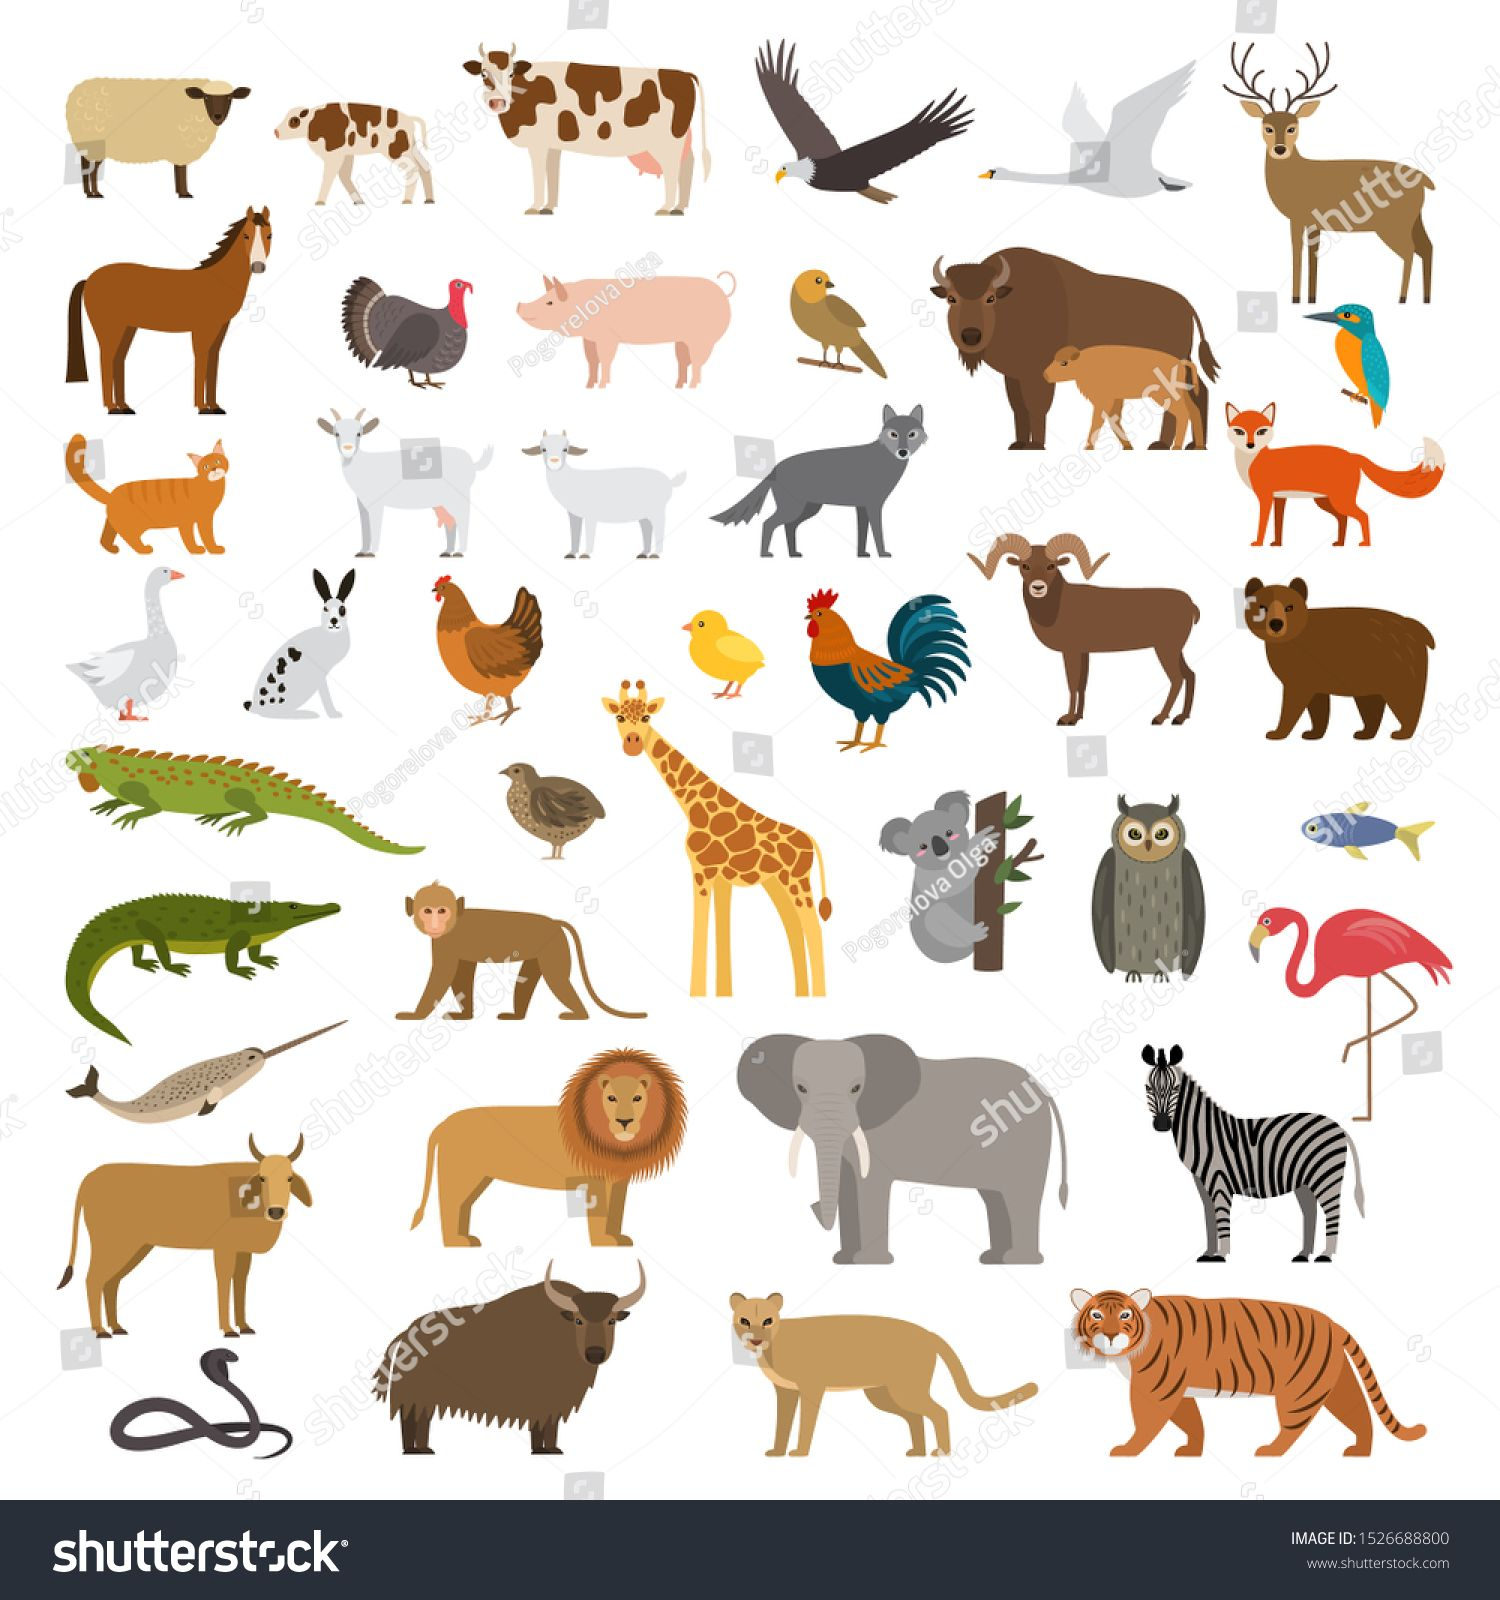 List of rainforest animals with names and images: A Large Set Of African Forest And Animals And Birds From The Farm With The Cubs Bear Cow Elephant Lion Flat Vector Illus Animals Pet Birds Forest Animals